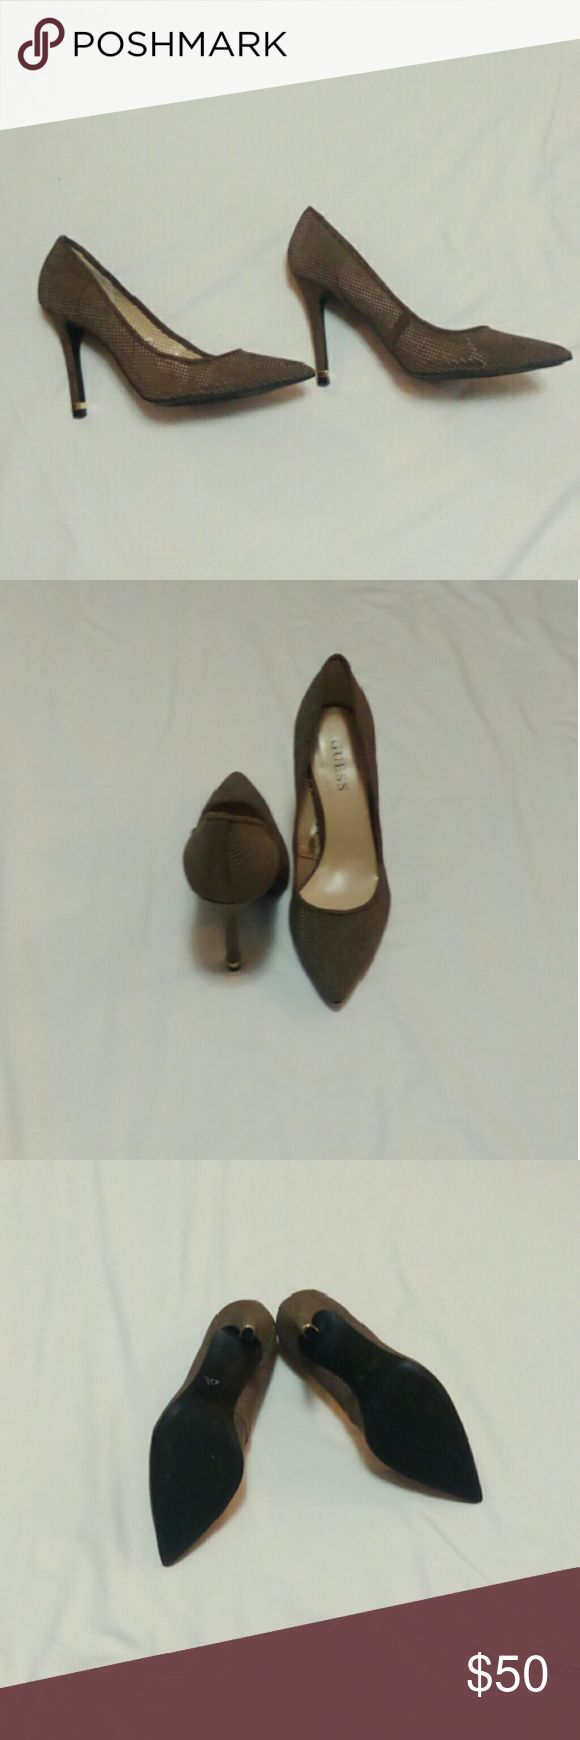 ❤Make an Offer❤ suede-like pointed heels Very cute, tan, perforated heels. Perfect for business or pleasure. Would be very sexy with dress slacks or a pencil skirt. Never used but no box. (I purchased in a department store and removed the sticker tags from the inside for your convenience.) Textile materials. (Appears to be microfiber.) 4 inch heels with a gold accent piece. -UPDATE- It appears I accidentally scorched a small spot with the hair dryer when removing the stickers, as depicted in…